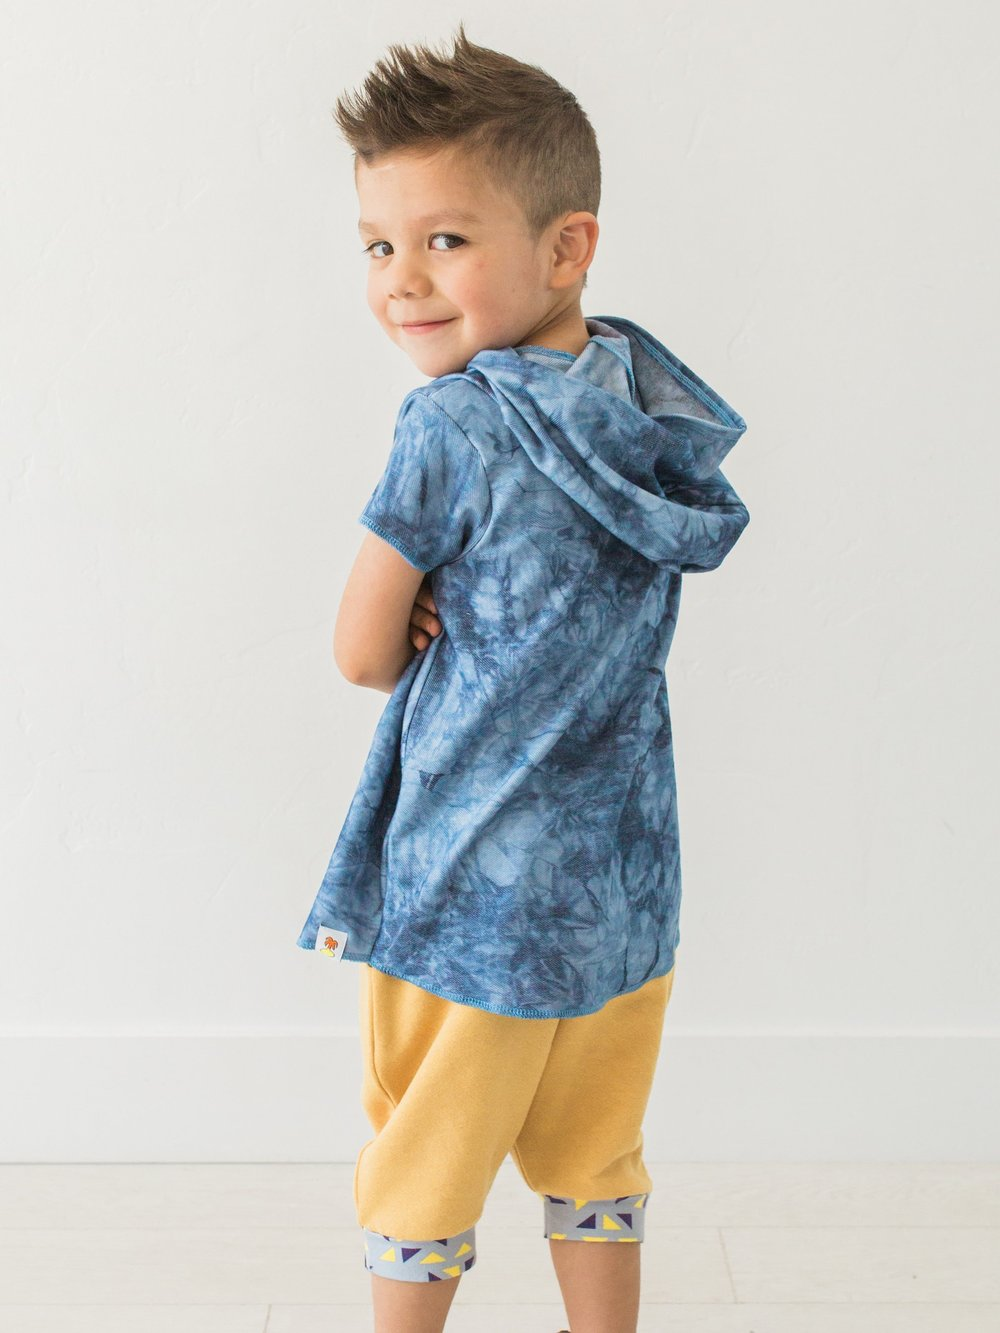 PARADISE KIDS CLOTHING (2)-0591.jpg